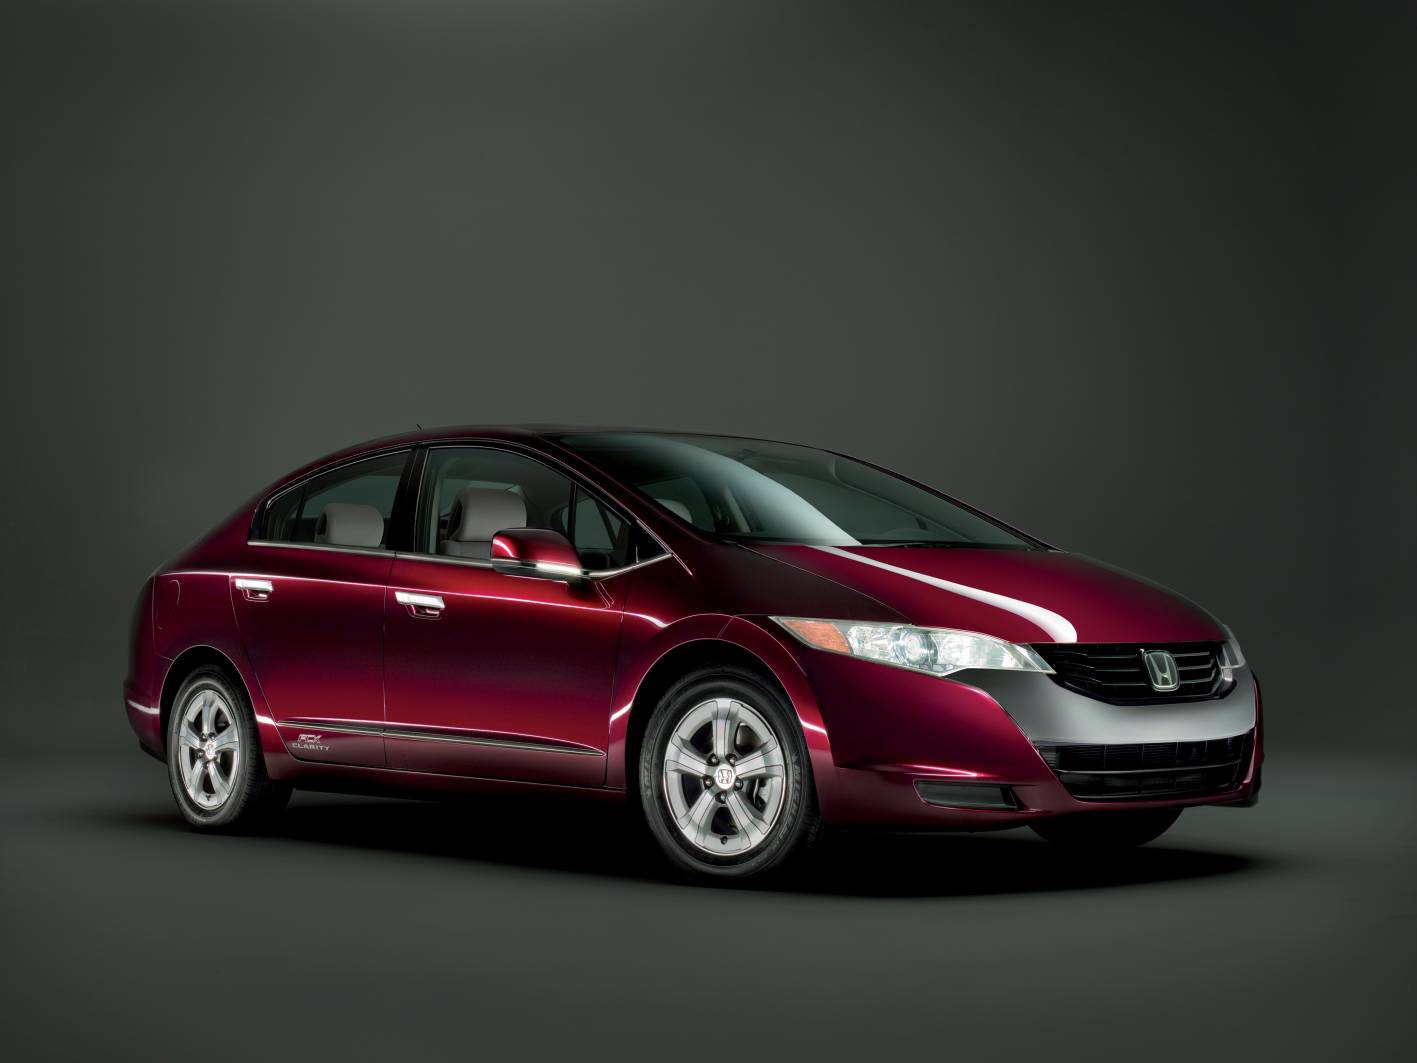 Honda and hydrogen fuel-cell vehicles